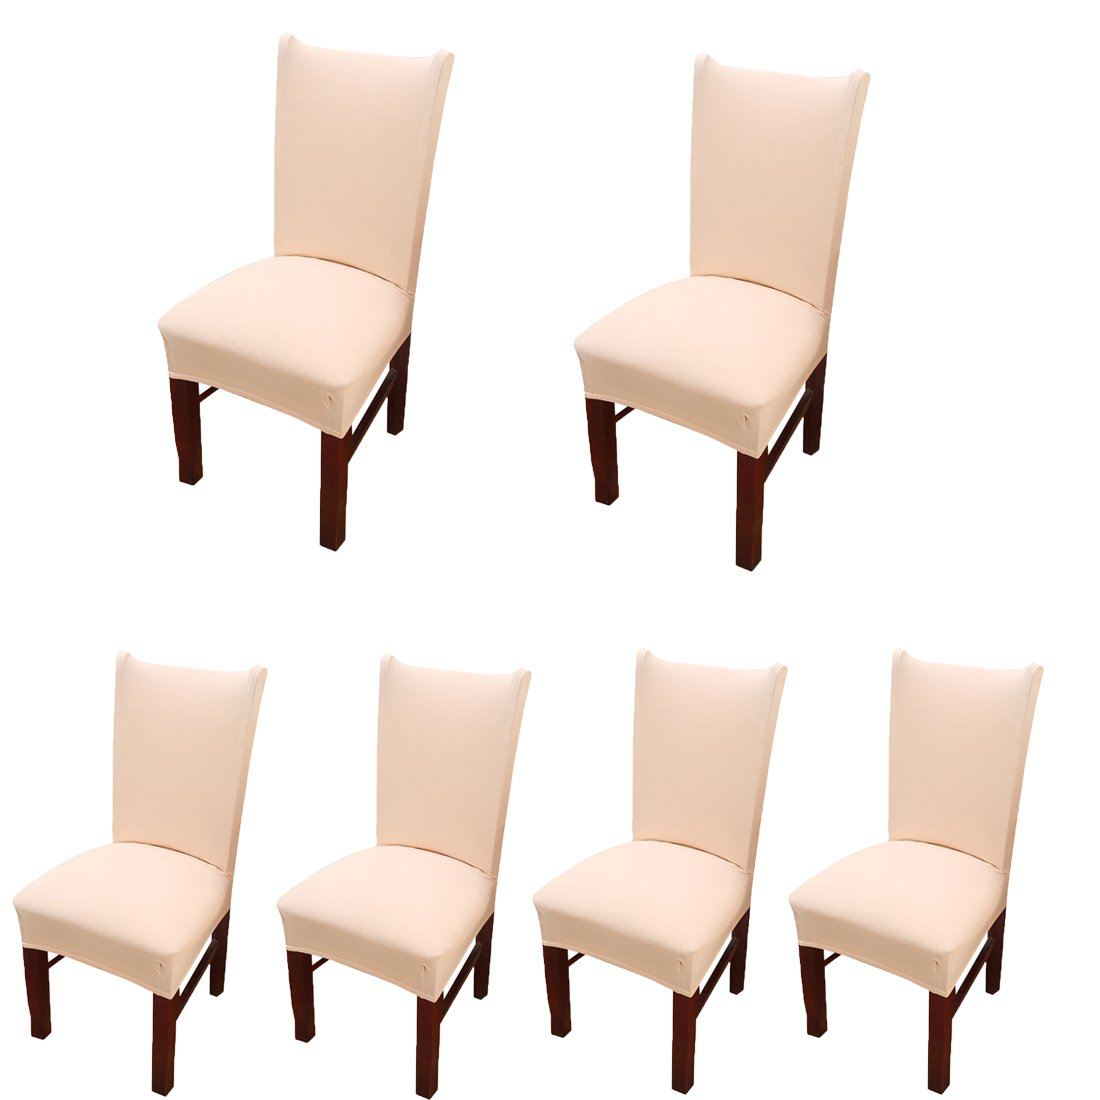 Deisy Dee Stretch Solid Color Chair Covers Removable Washable for Hotel Dining Room Ceremony Chair Slipcovers Pack of 6 C093 (Beige) by Deisy Dee (Image #1)